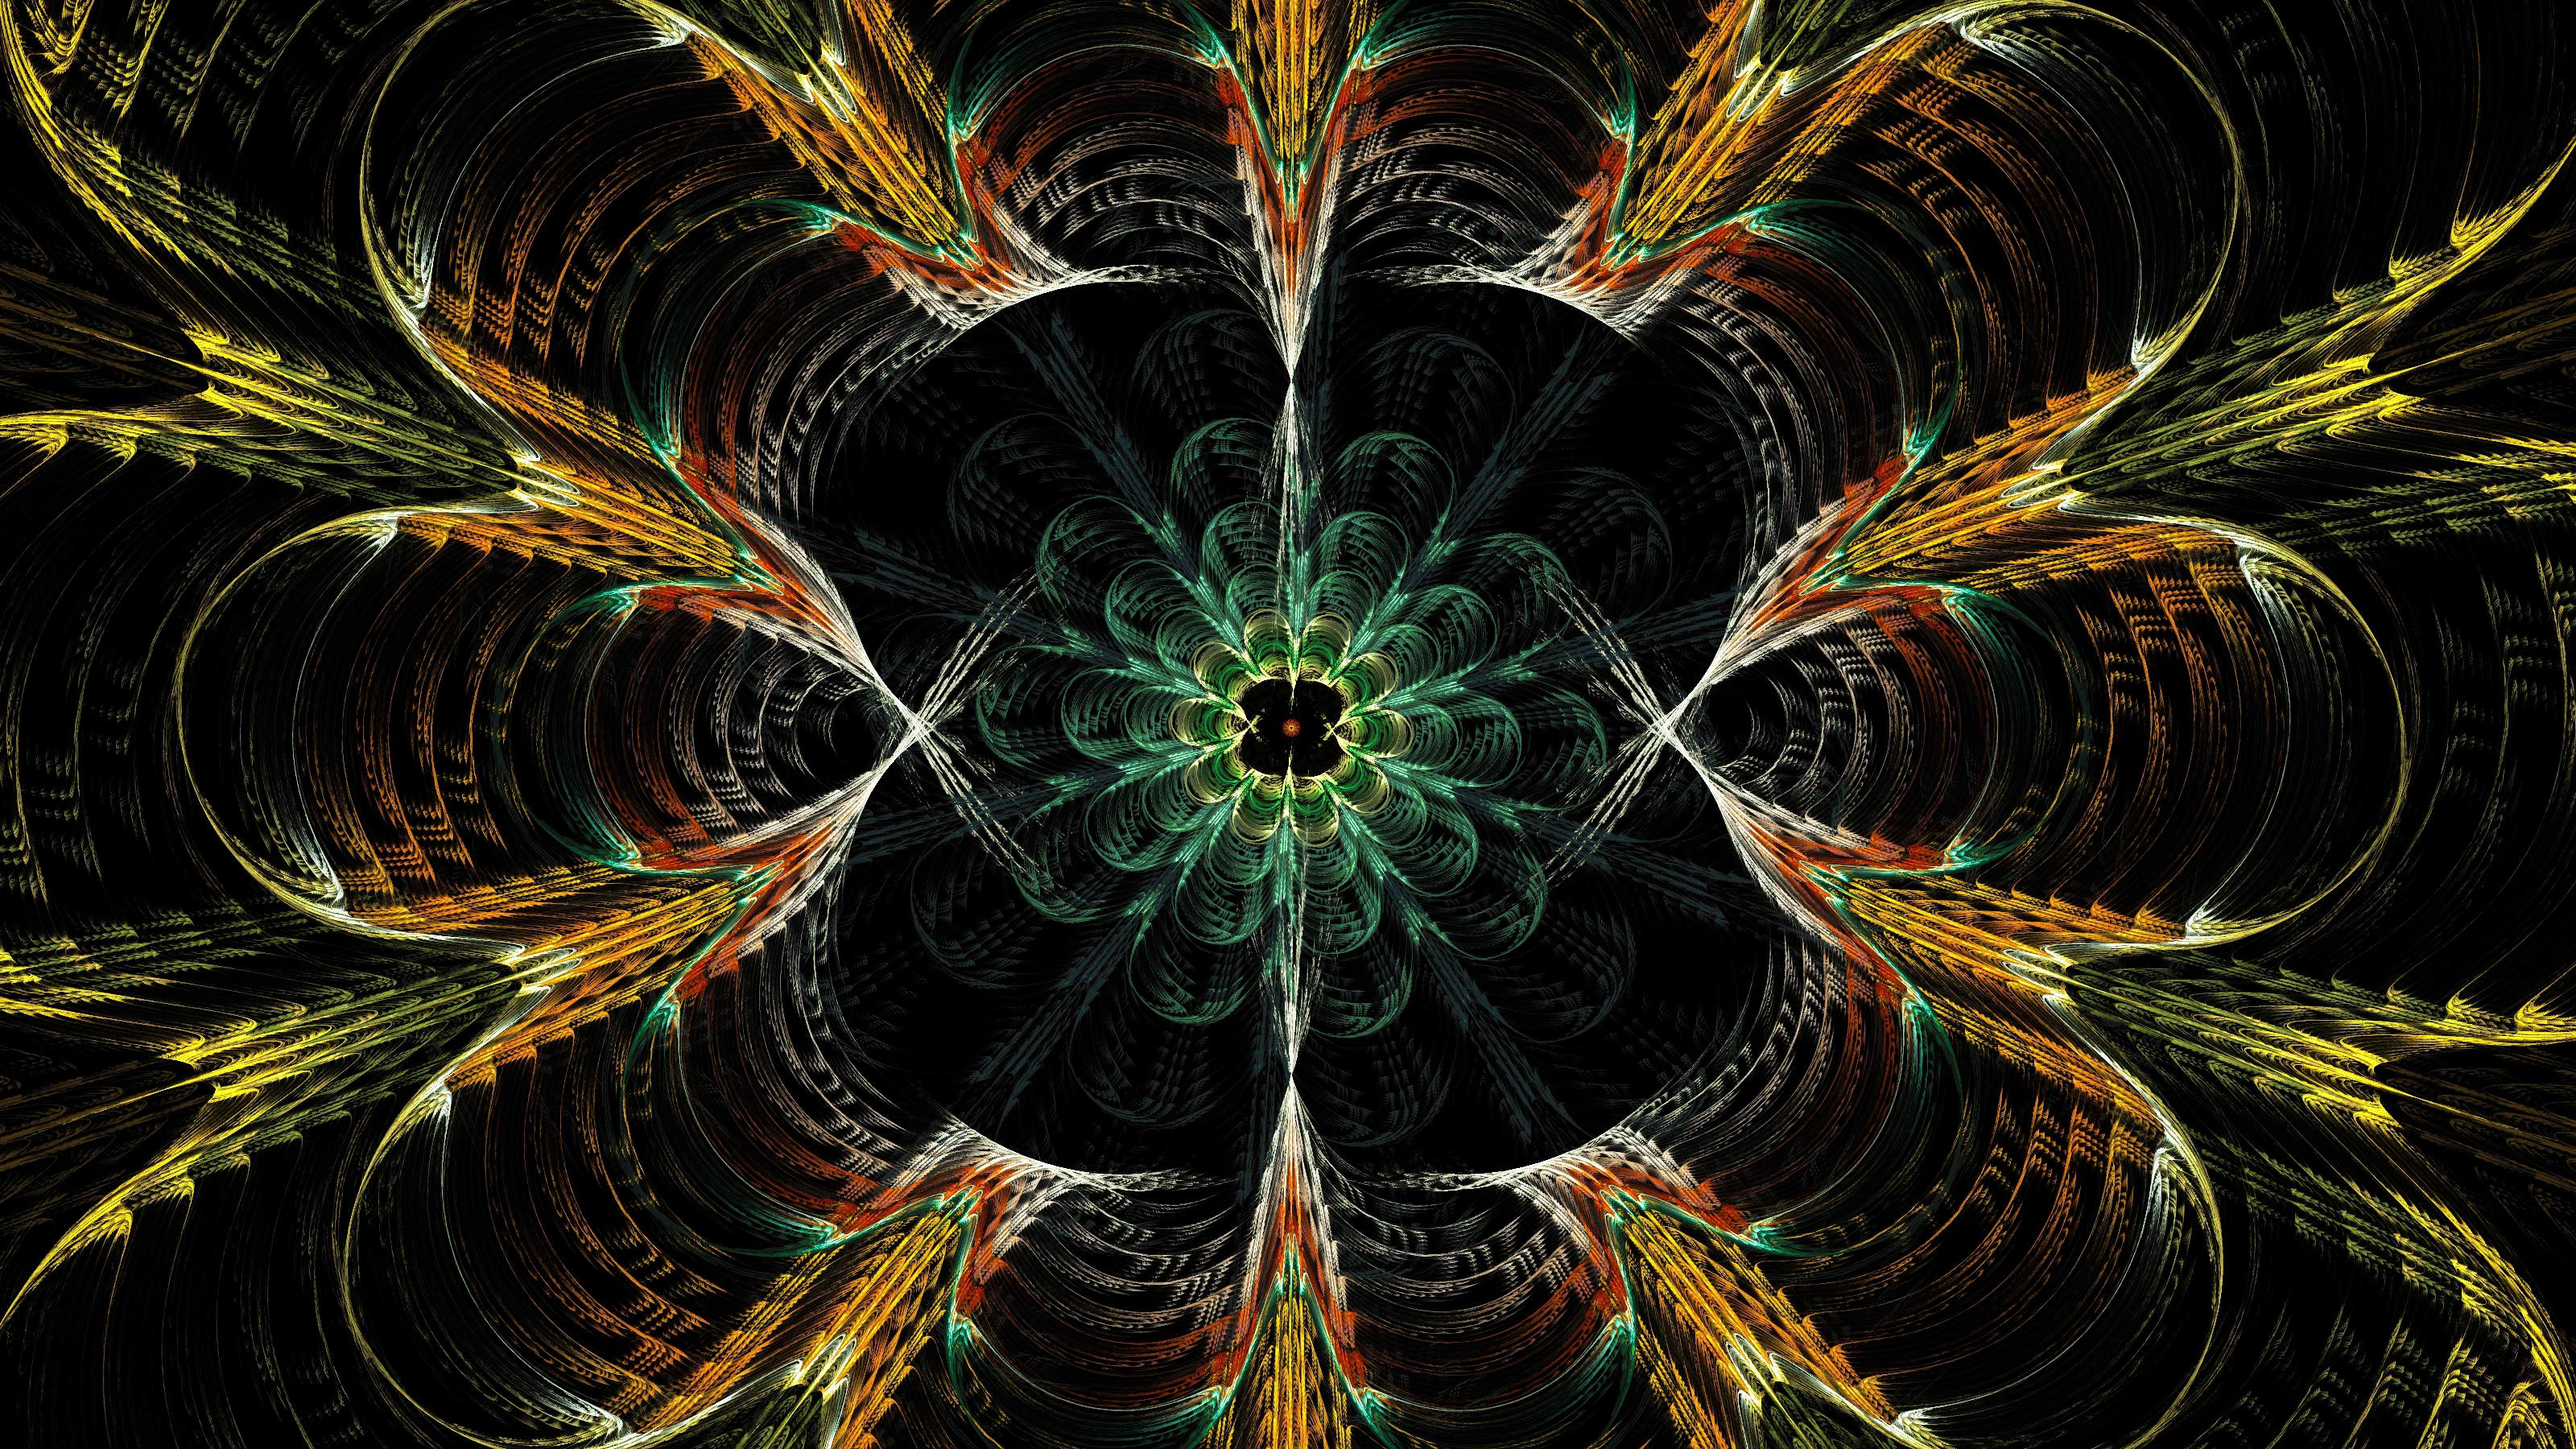 Raw fractals full hd wallpaper and background image - 3200x1800 wallpaper ...